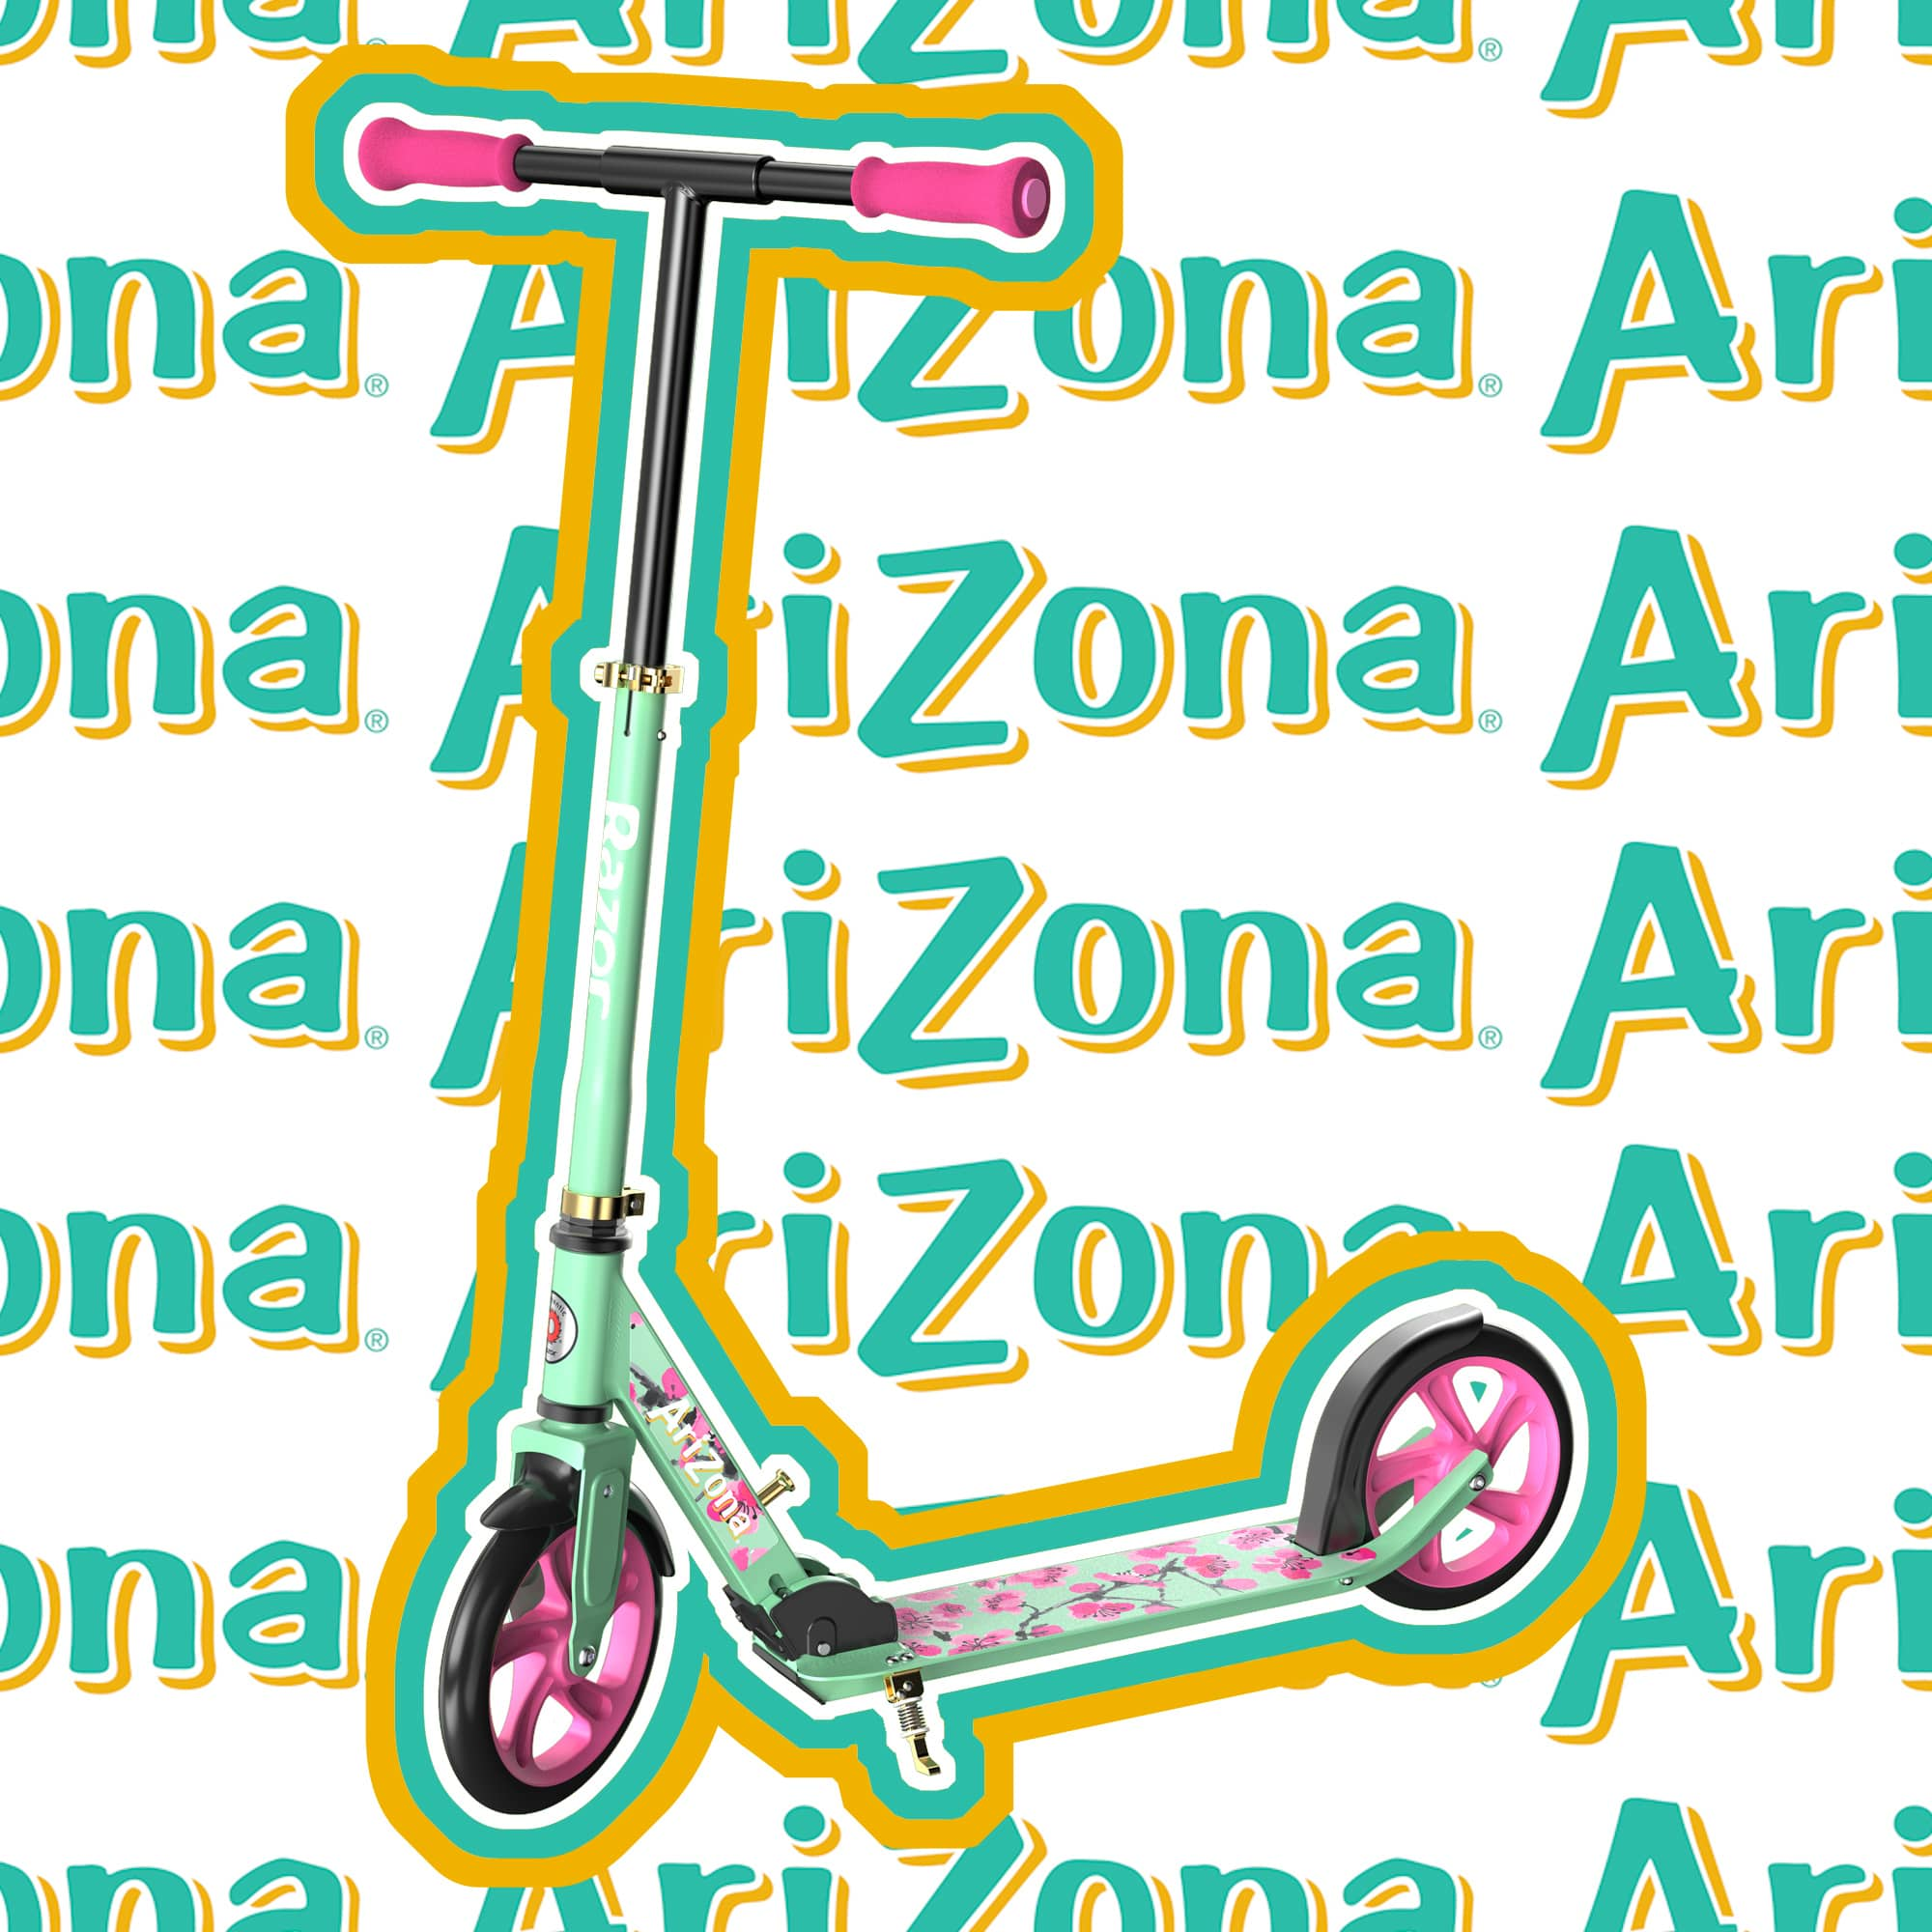 These Razor scooters are inspired by AriZona Iced Tea, Sharpie, Sriracha, and Takis Snacks 12